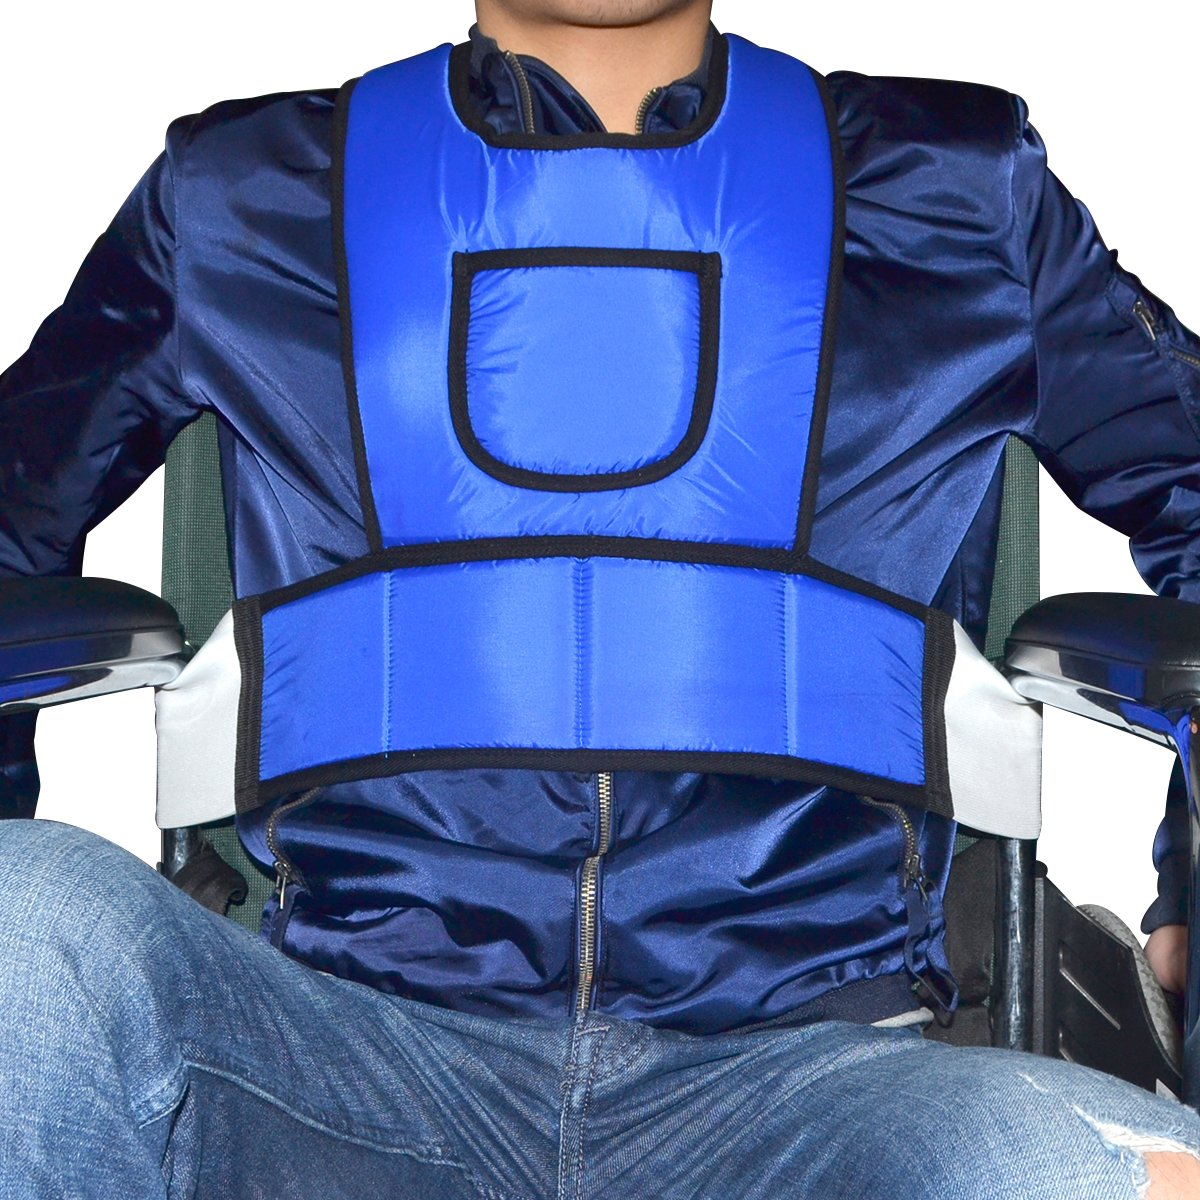 Amazon Chenhon Criss Cross Chest Vest Restraint For Use With